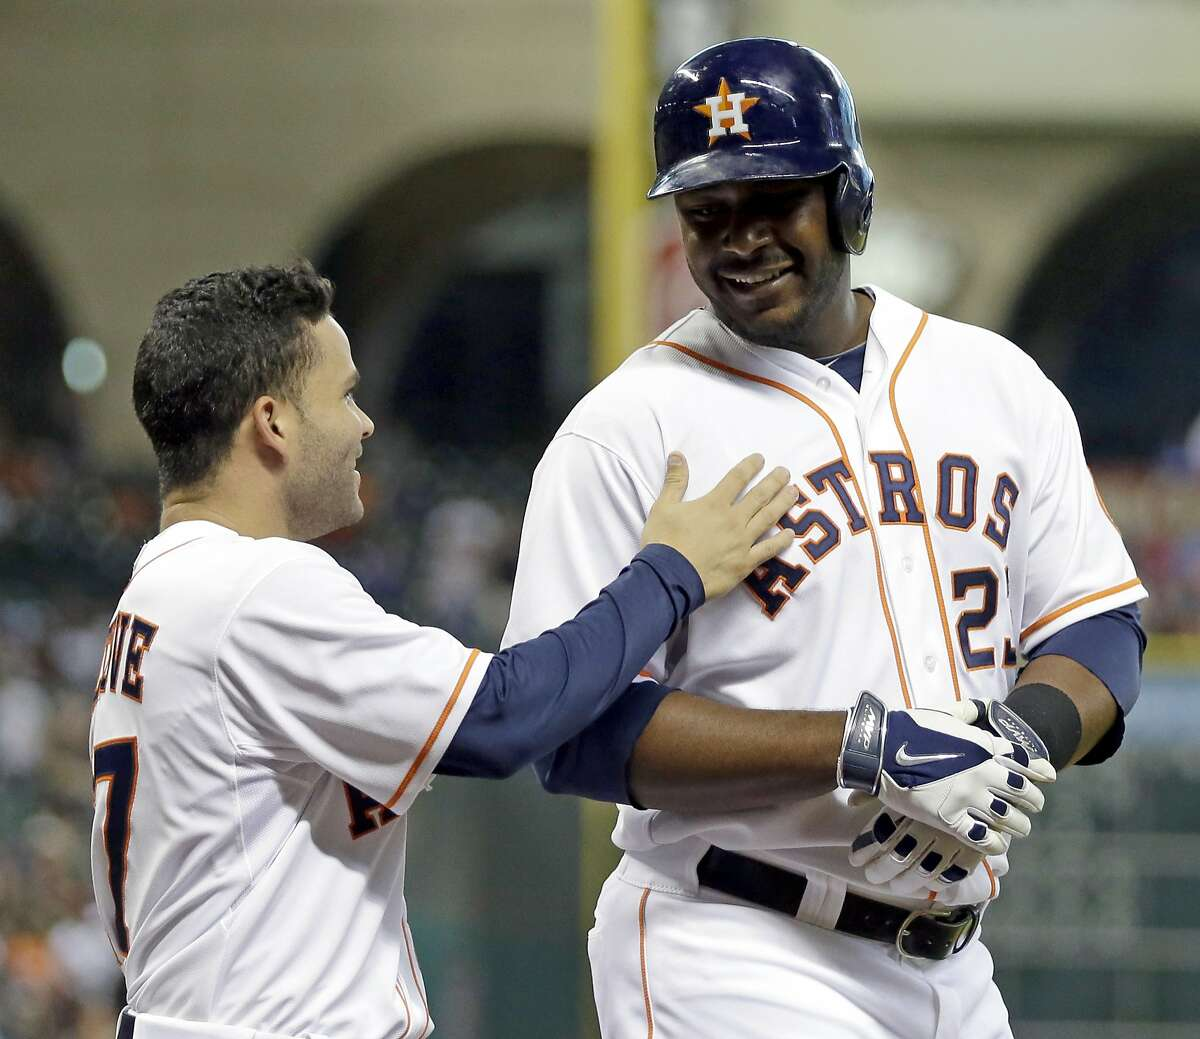 Houston Astros' Chris Carter, right, is congratulated by Jose Altuve, left, after hitting a three-run home run against the Oakland Athletics during the third inning of a baseball game Monday, July 28, 2014, in Houston. Altuve and Enrique Hernandez scored on Carter's homer. (AP Photo/David J. Phillip)